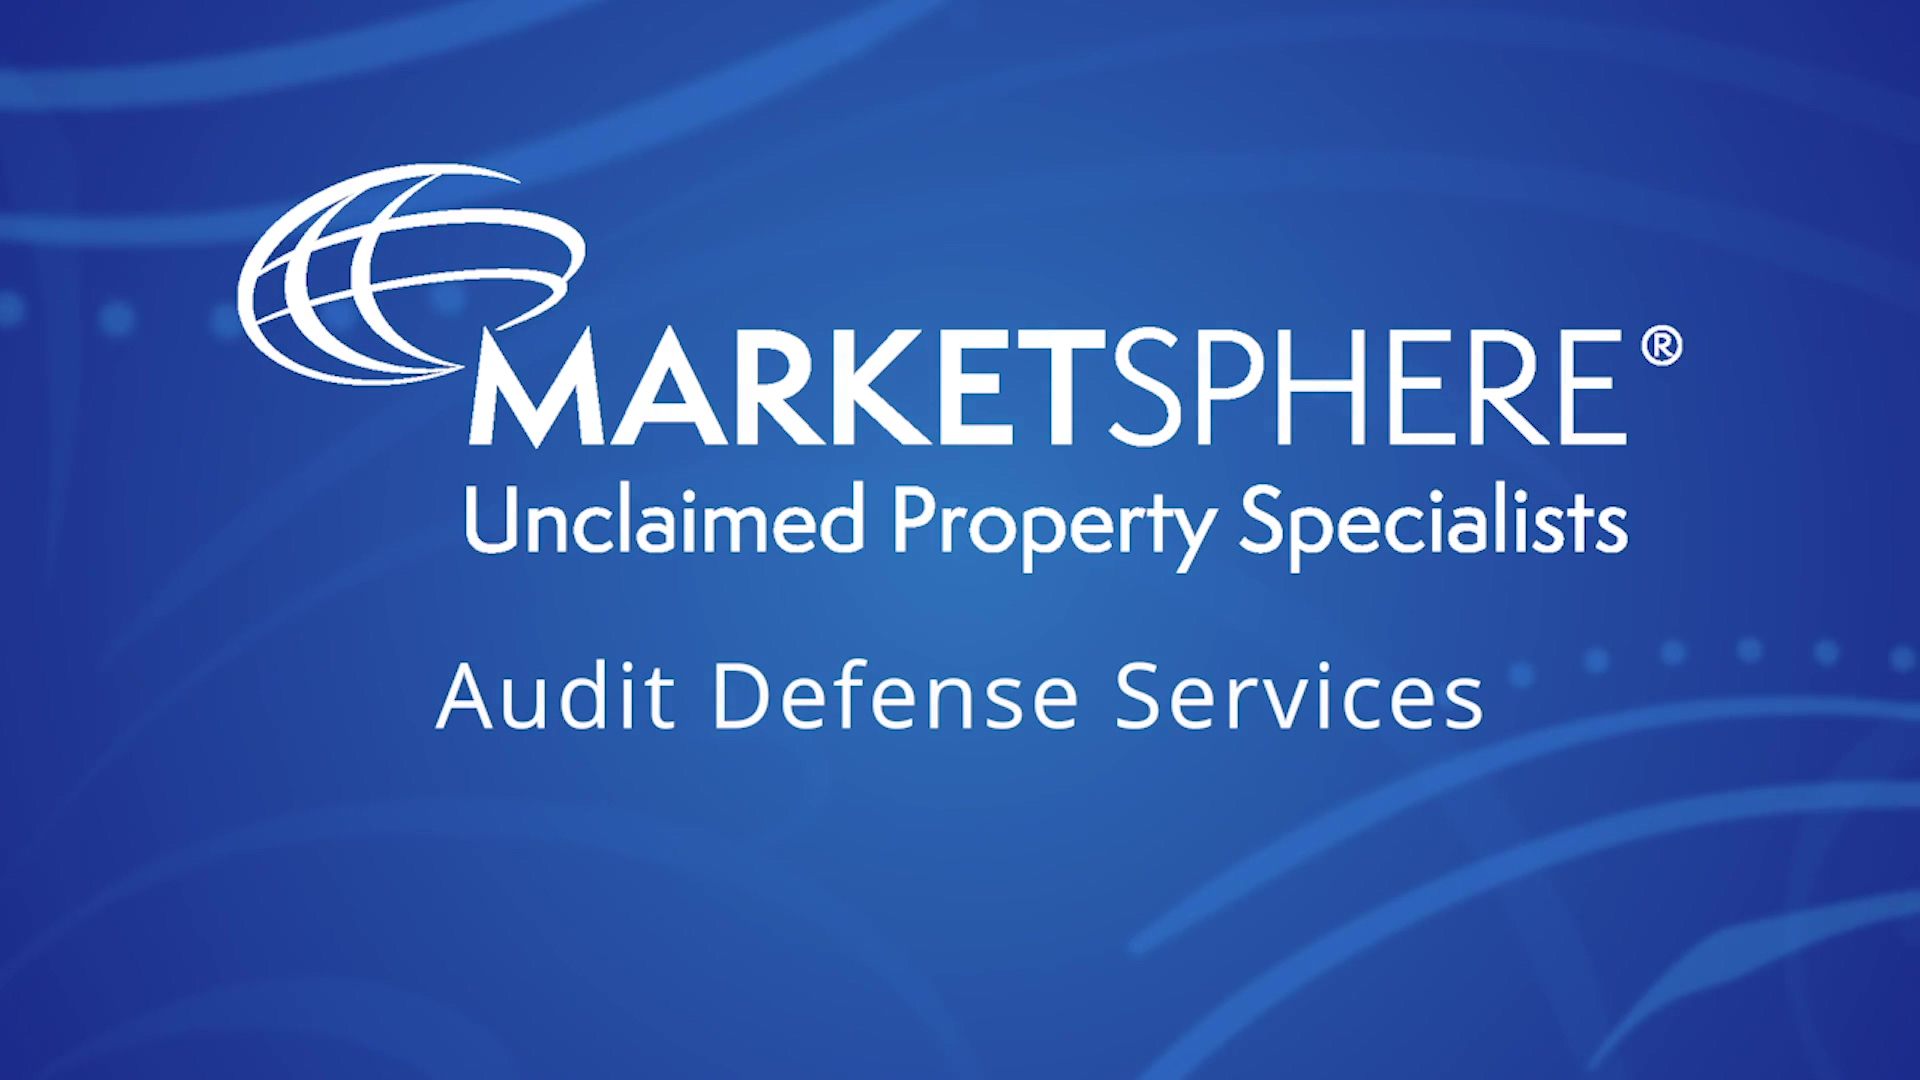 Audit Defense Services